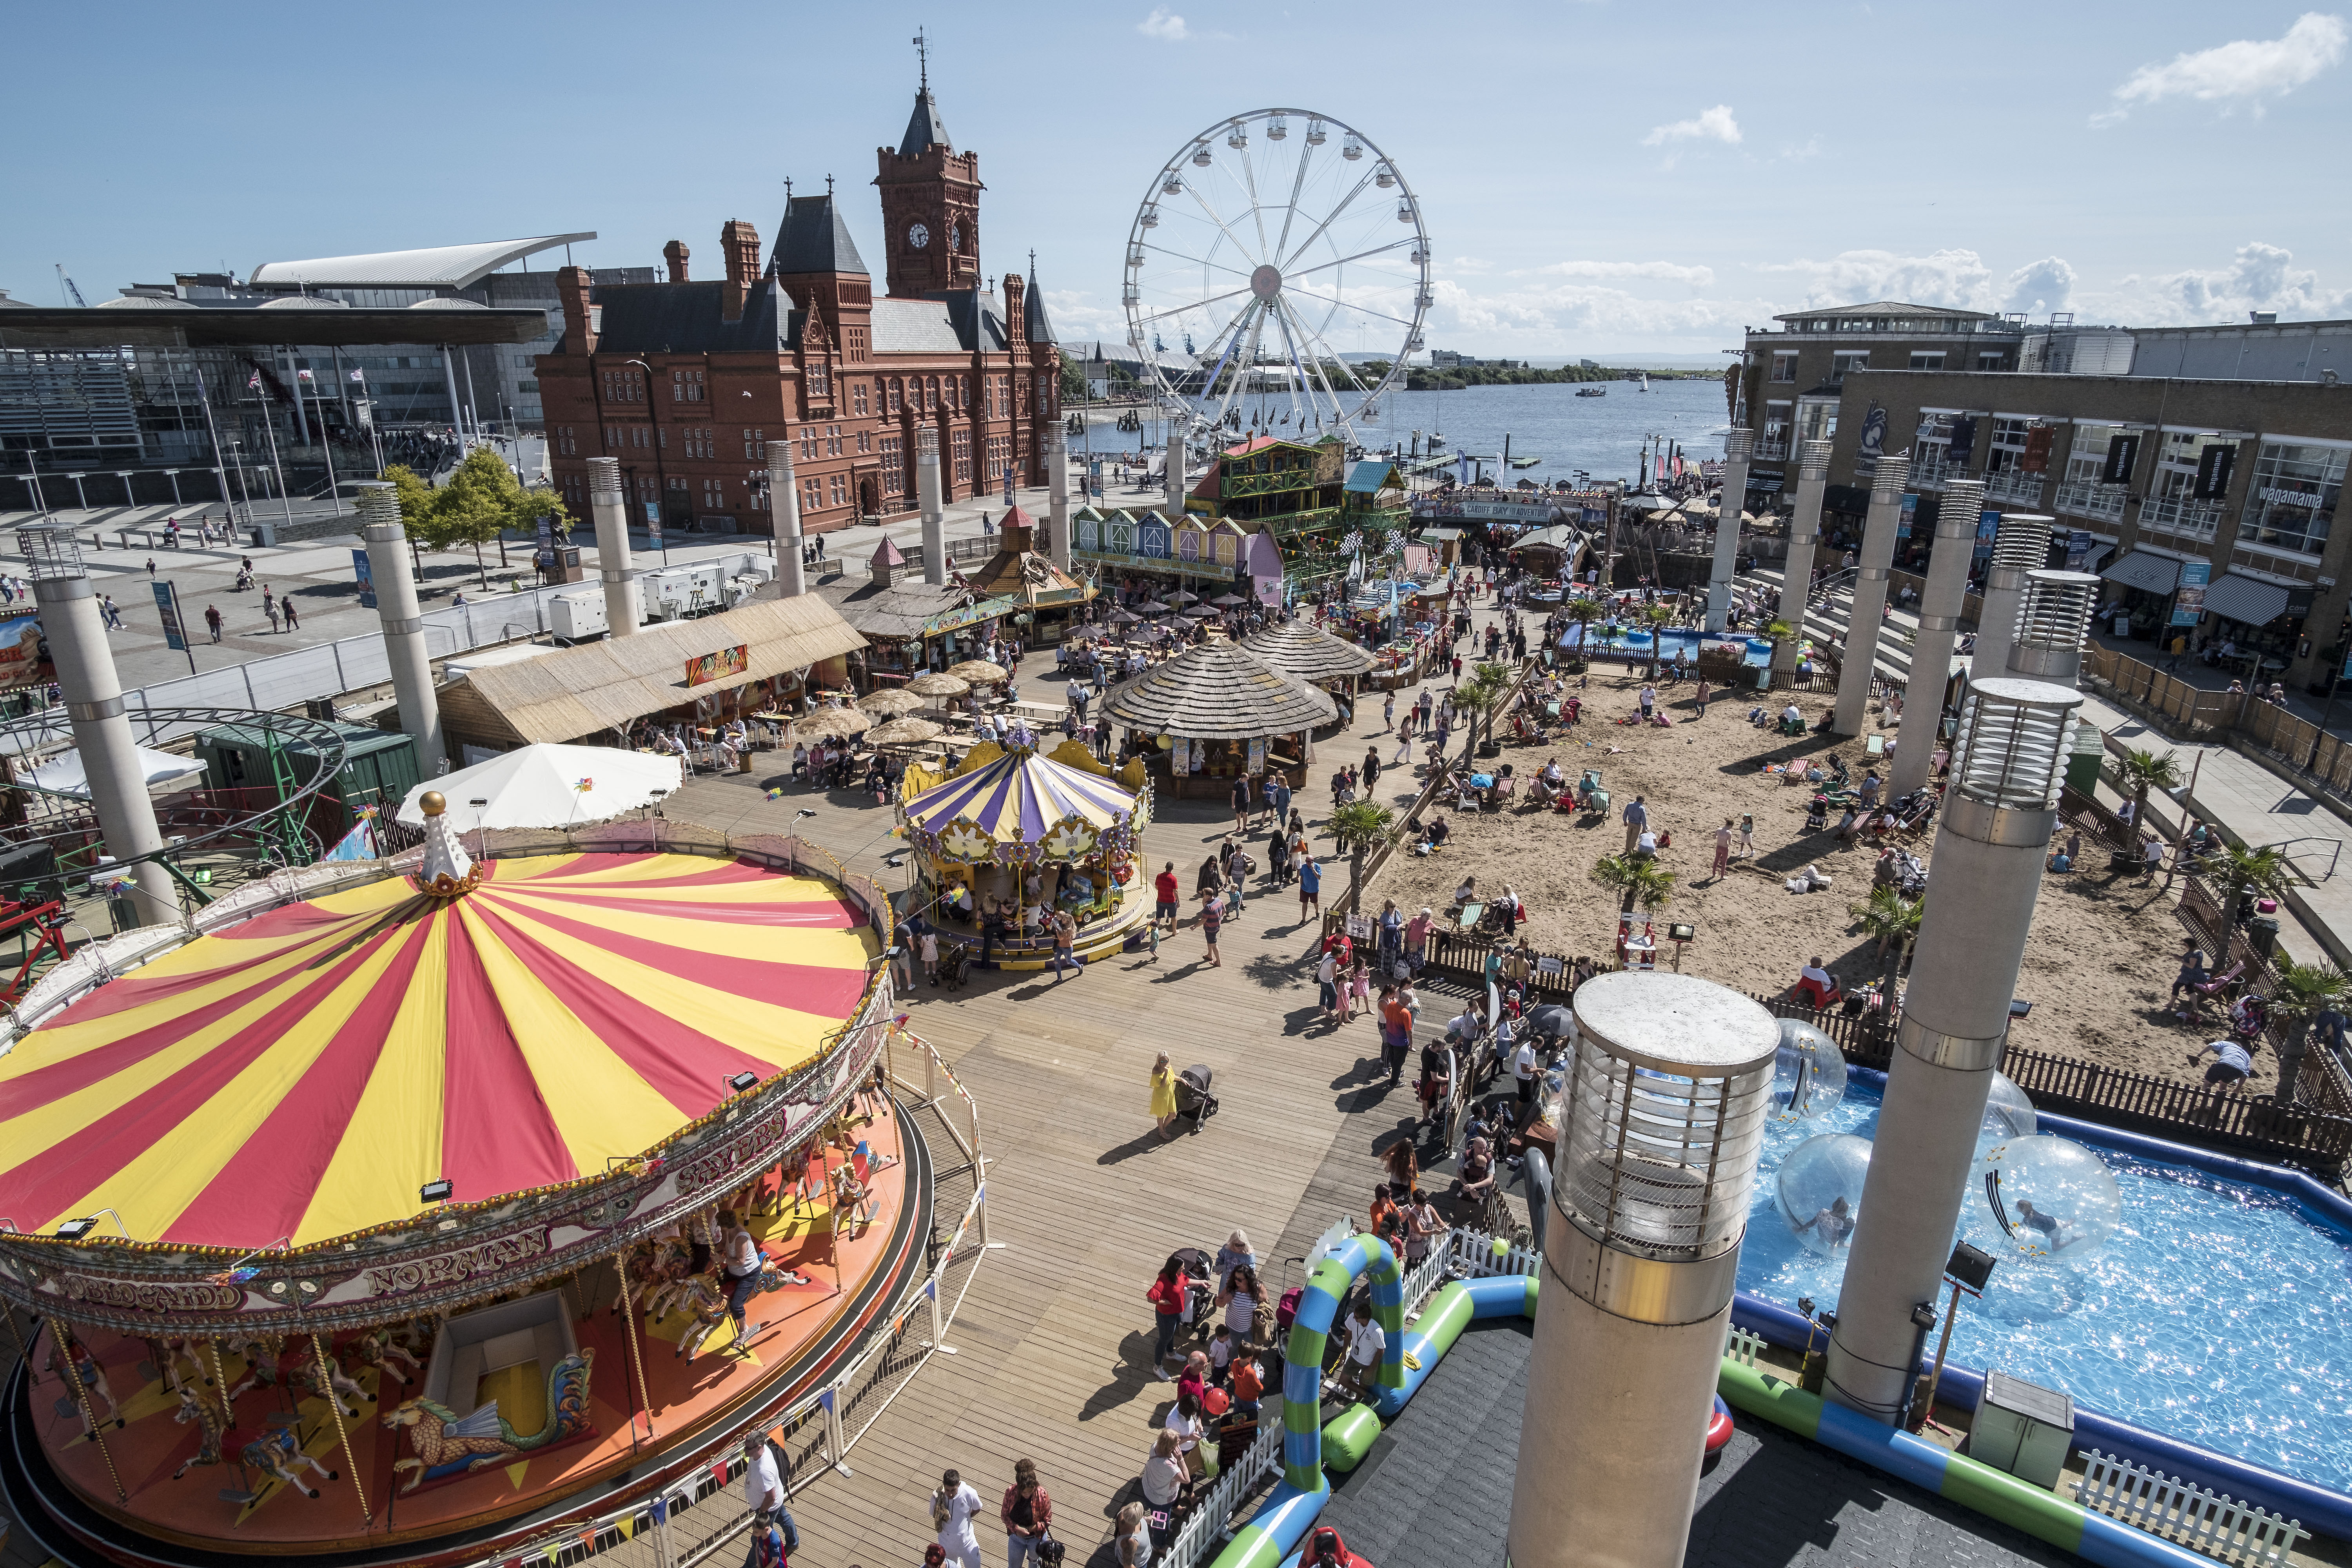 Capital FM Cardiff Bay beach to become a bigger theme park